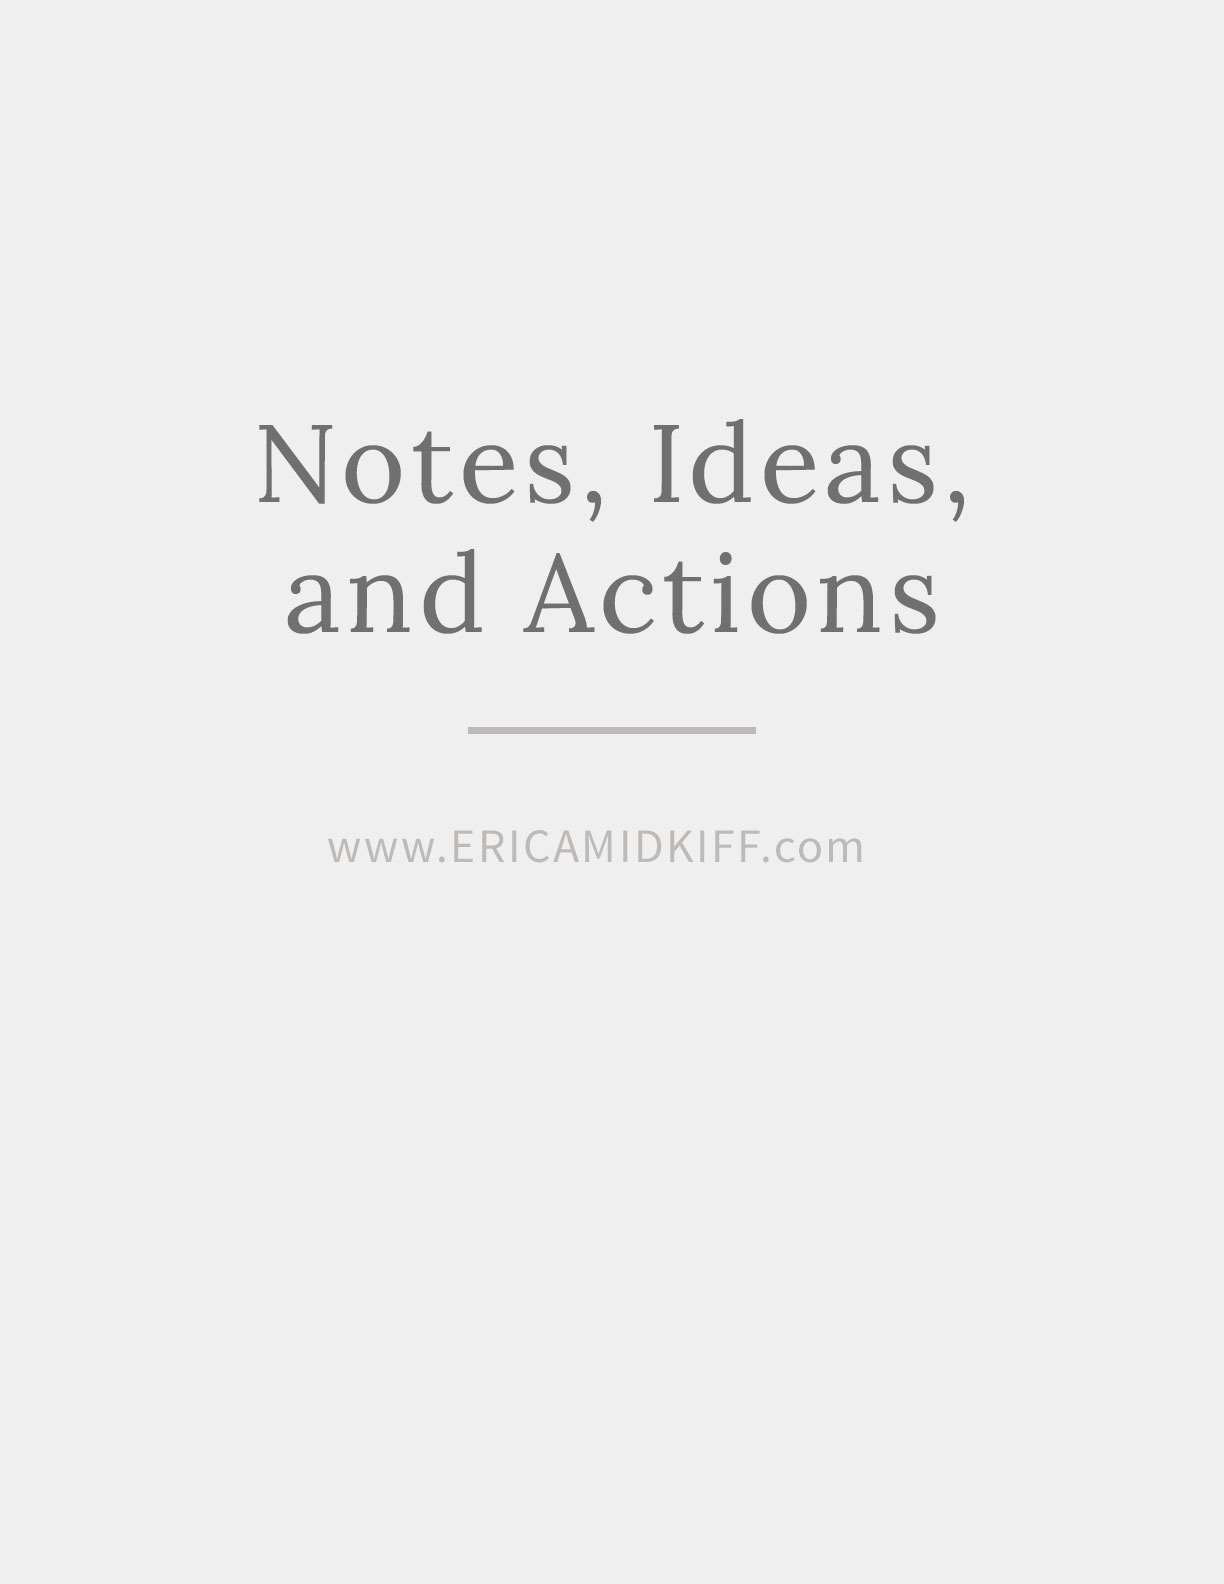 Notes, Ideas, and Actions - Worksheets by Erica Midkiff.jpg